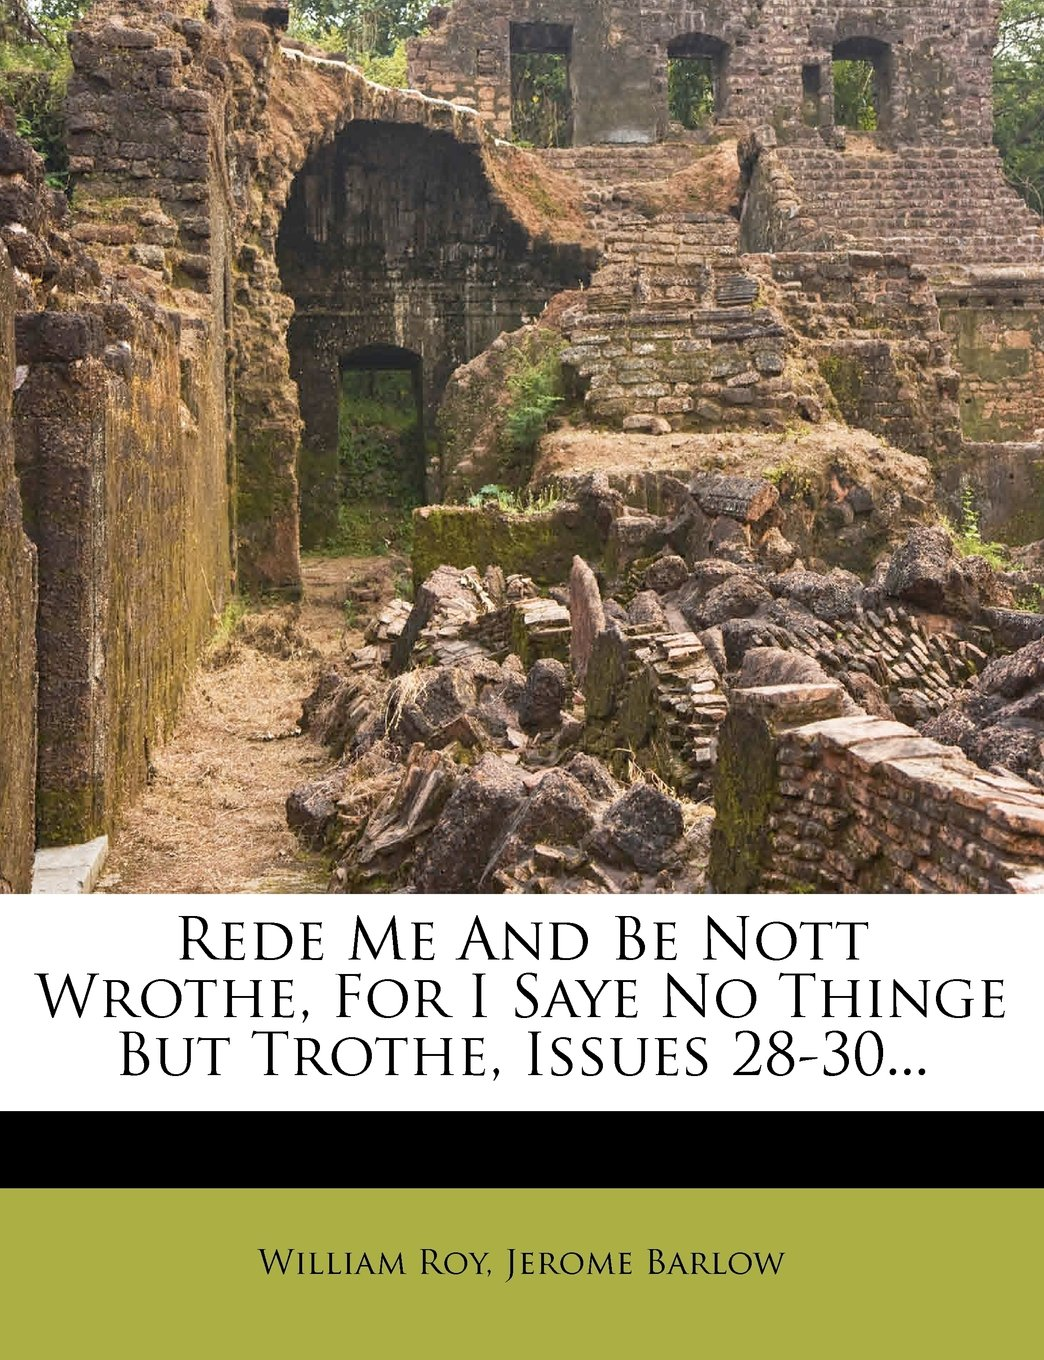 Download Rede Me And Be Nott Wrothe, For I Saye No Thinge But Trothe, Issues 28-30... ebook